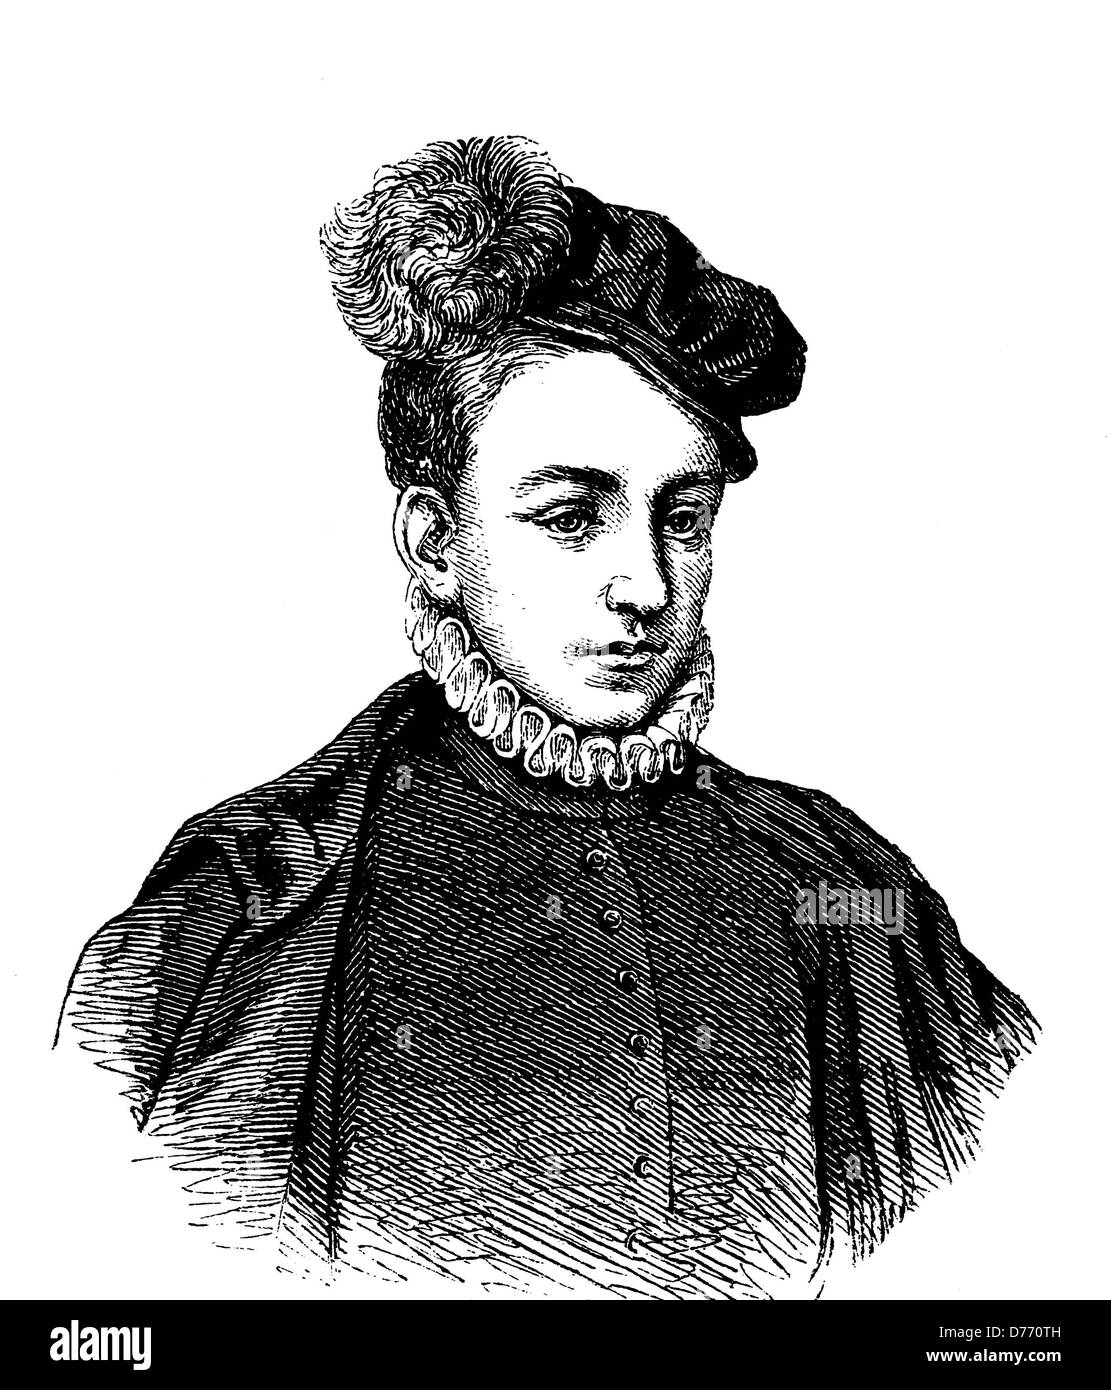 Charles IX of Valois, 1550 - 1574, King of France, historical woodcut, 1880 Stock Photo